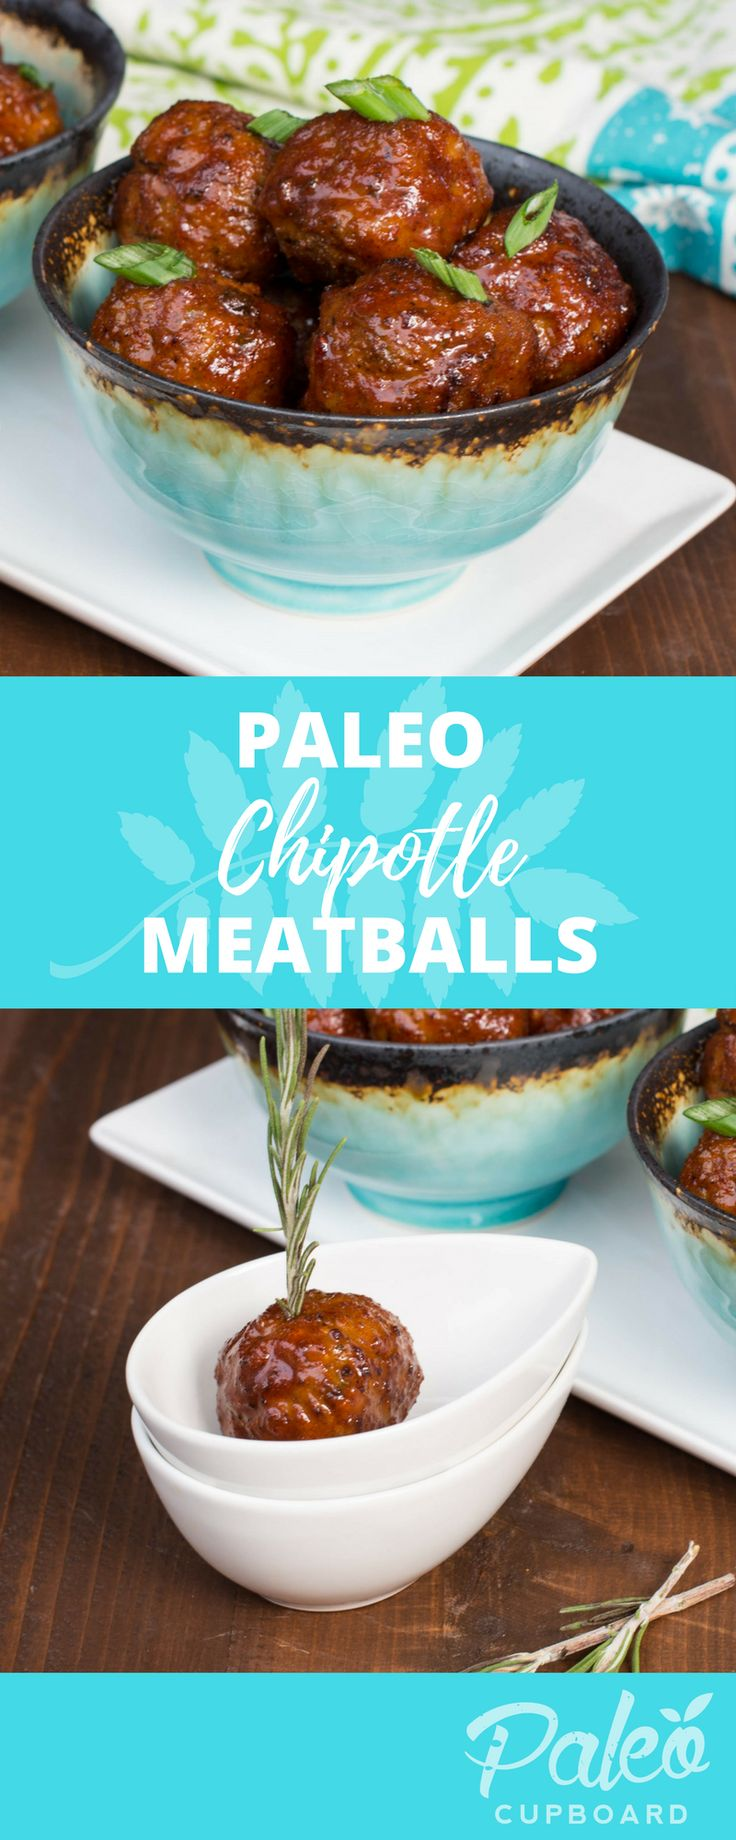 Paleo Chipotle Meatball Recipe - Best meatball recipe! Tons of flavor and makes great leftovers!